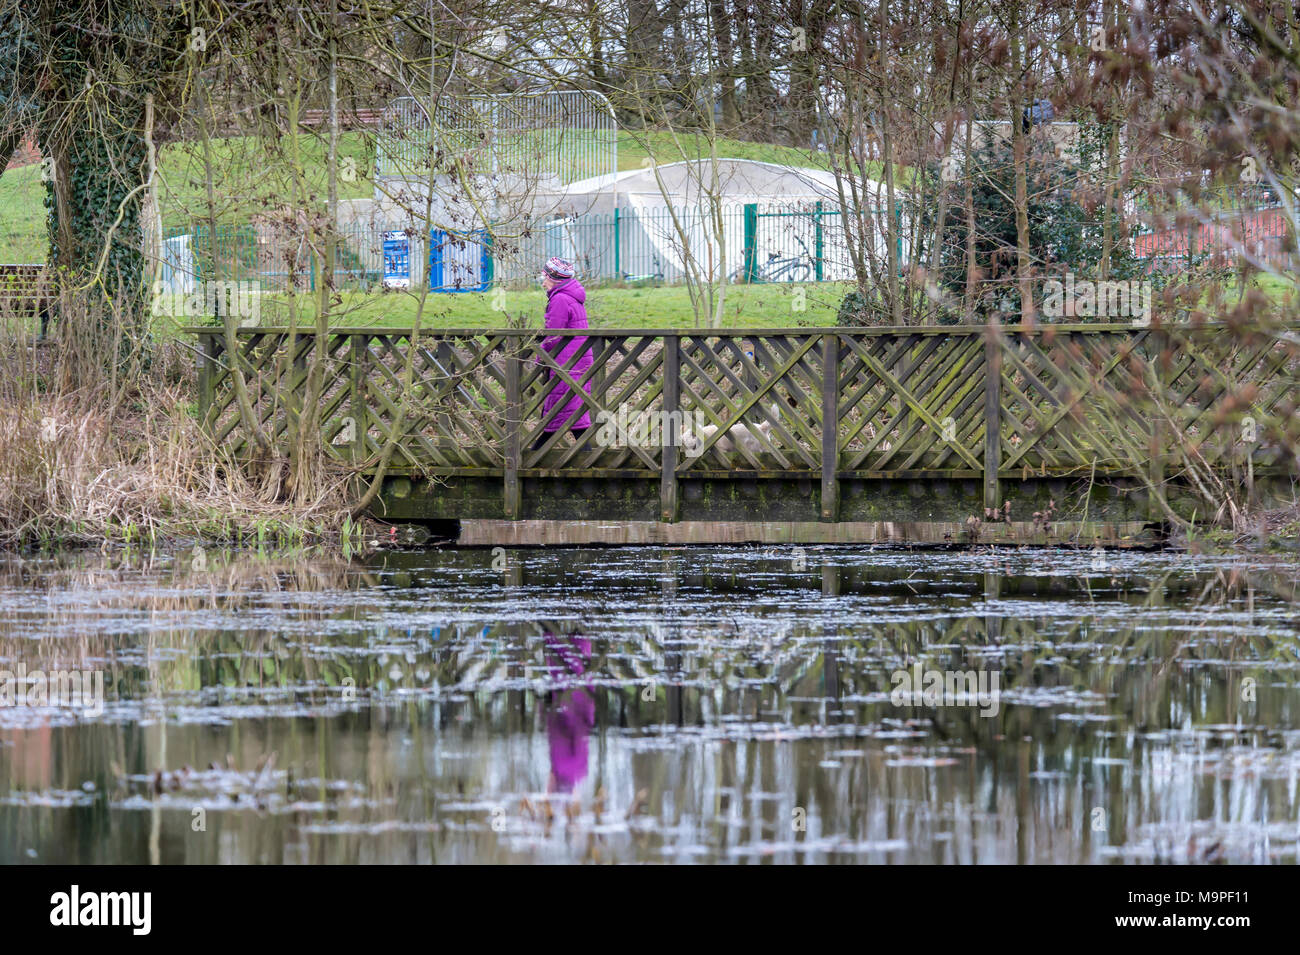 Melton Mowbray 27th March 2017: Chilly day for urban wildlife and park visitors  at the town center pond. Clifford Norton NPA Image Live News. Credit: Clifford Norton/Alamy Live News - Stock Image